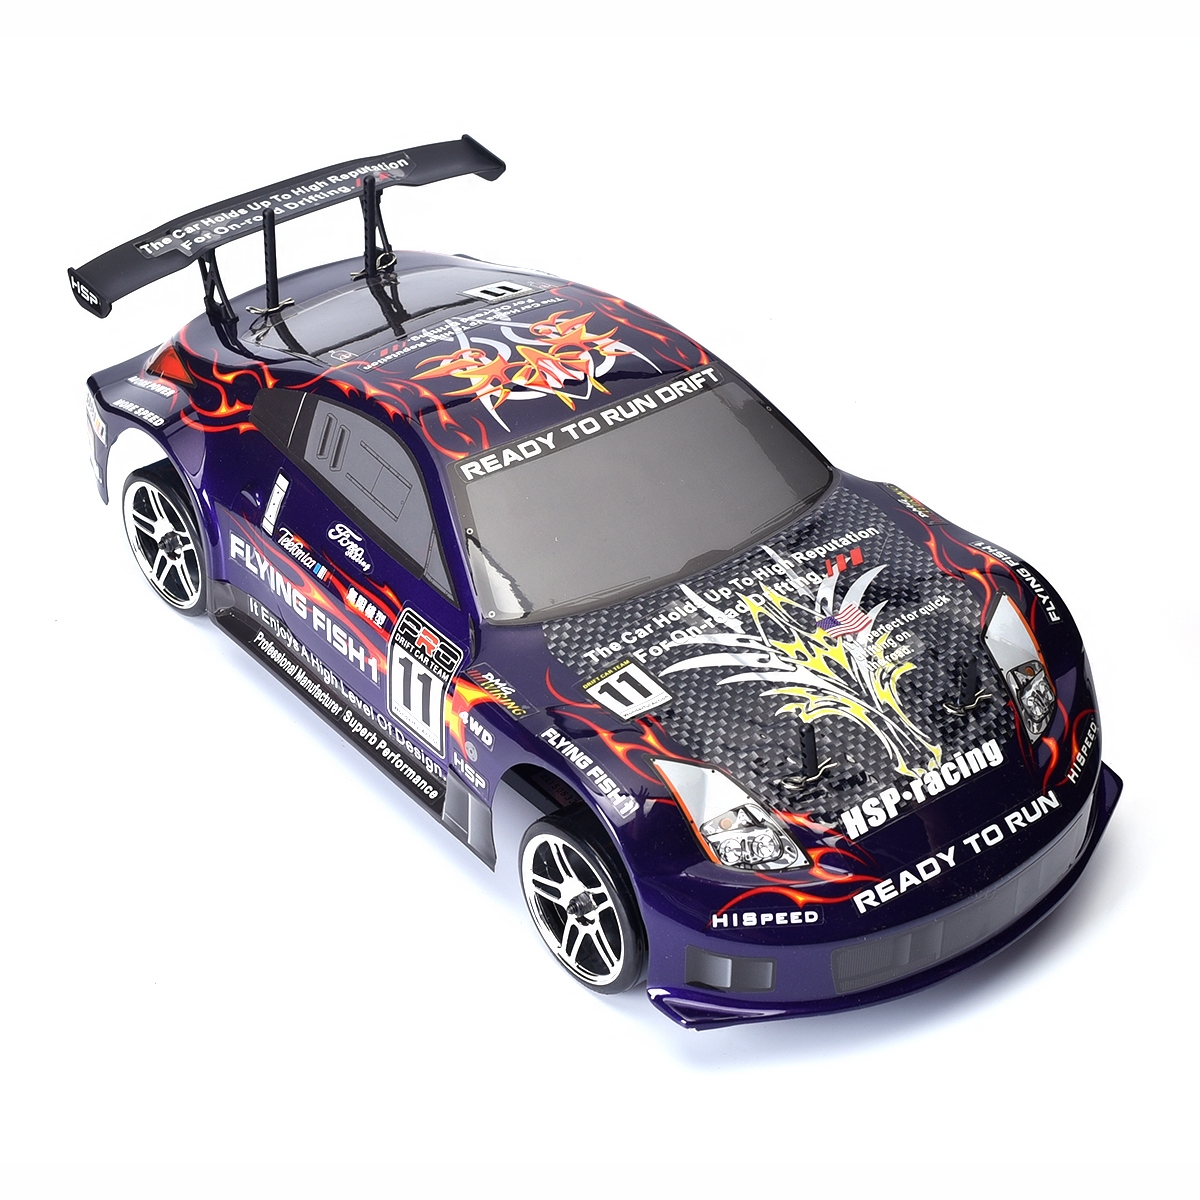 hsp high speed 94123 1 10 rc drift car 4wd electric flying fish drifting on road ebay. Black Bedroom Furniture Sets. Home Design Ideas